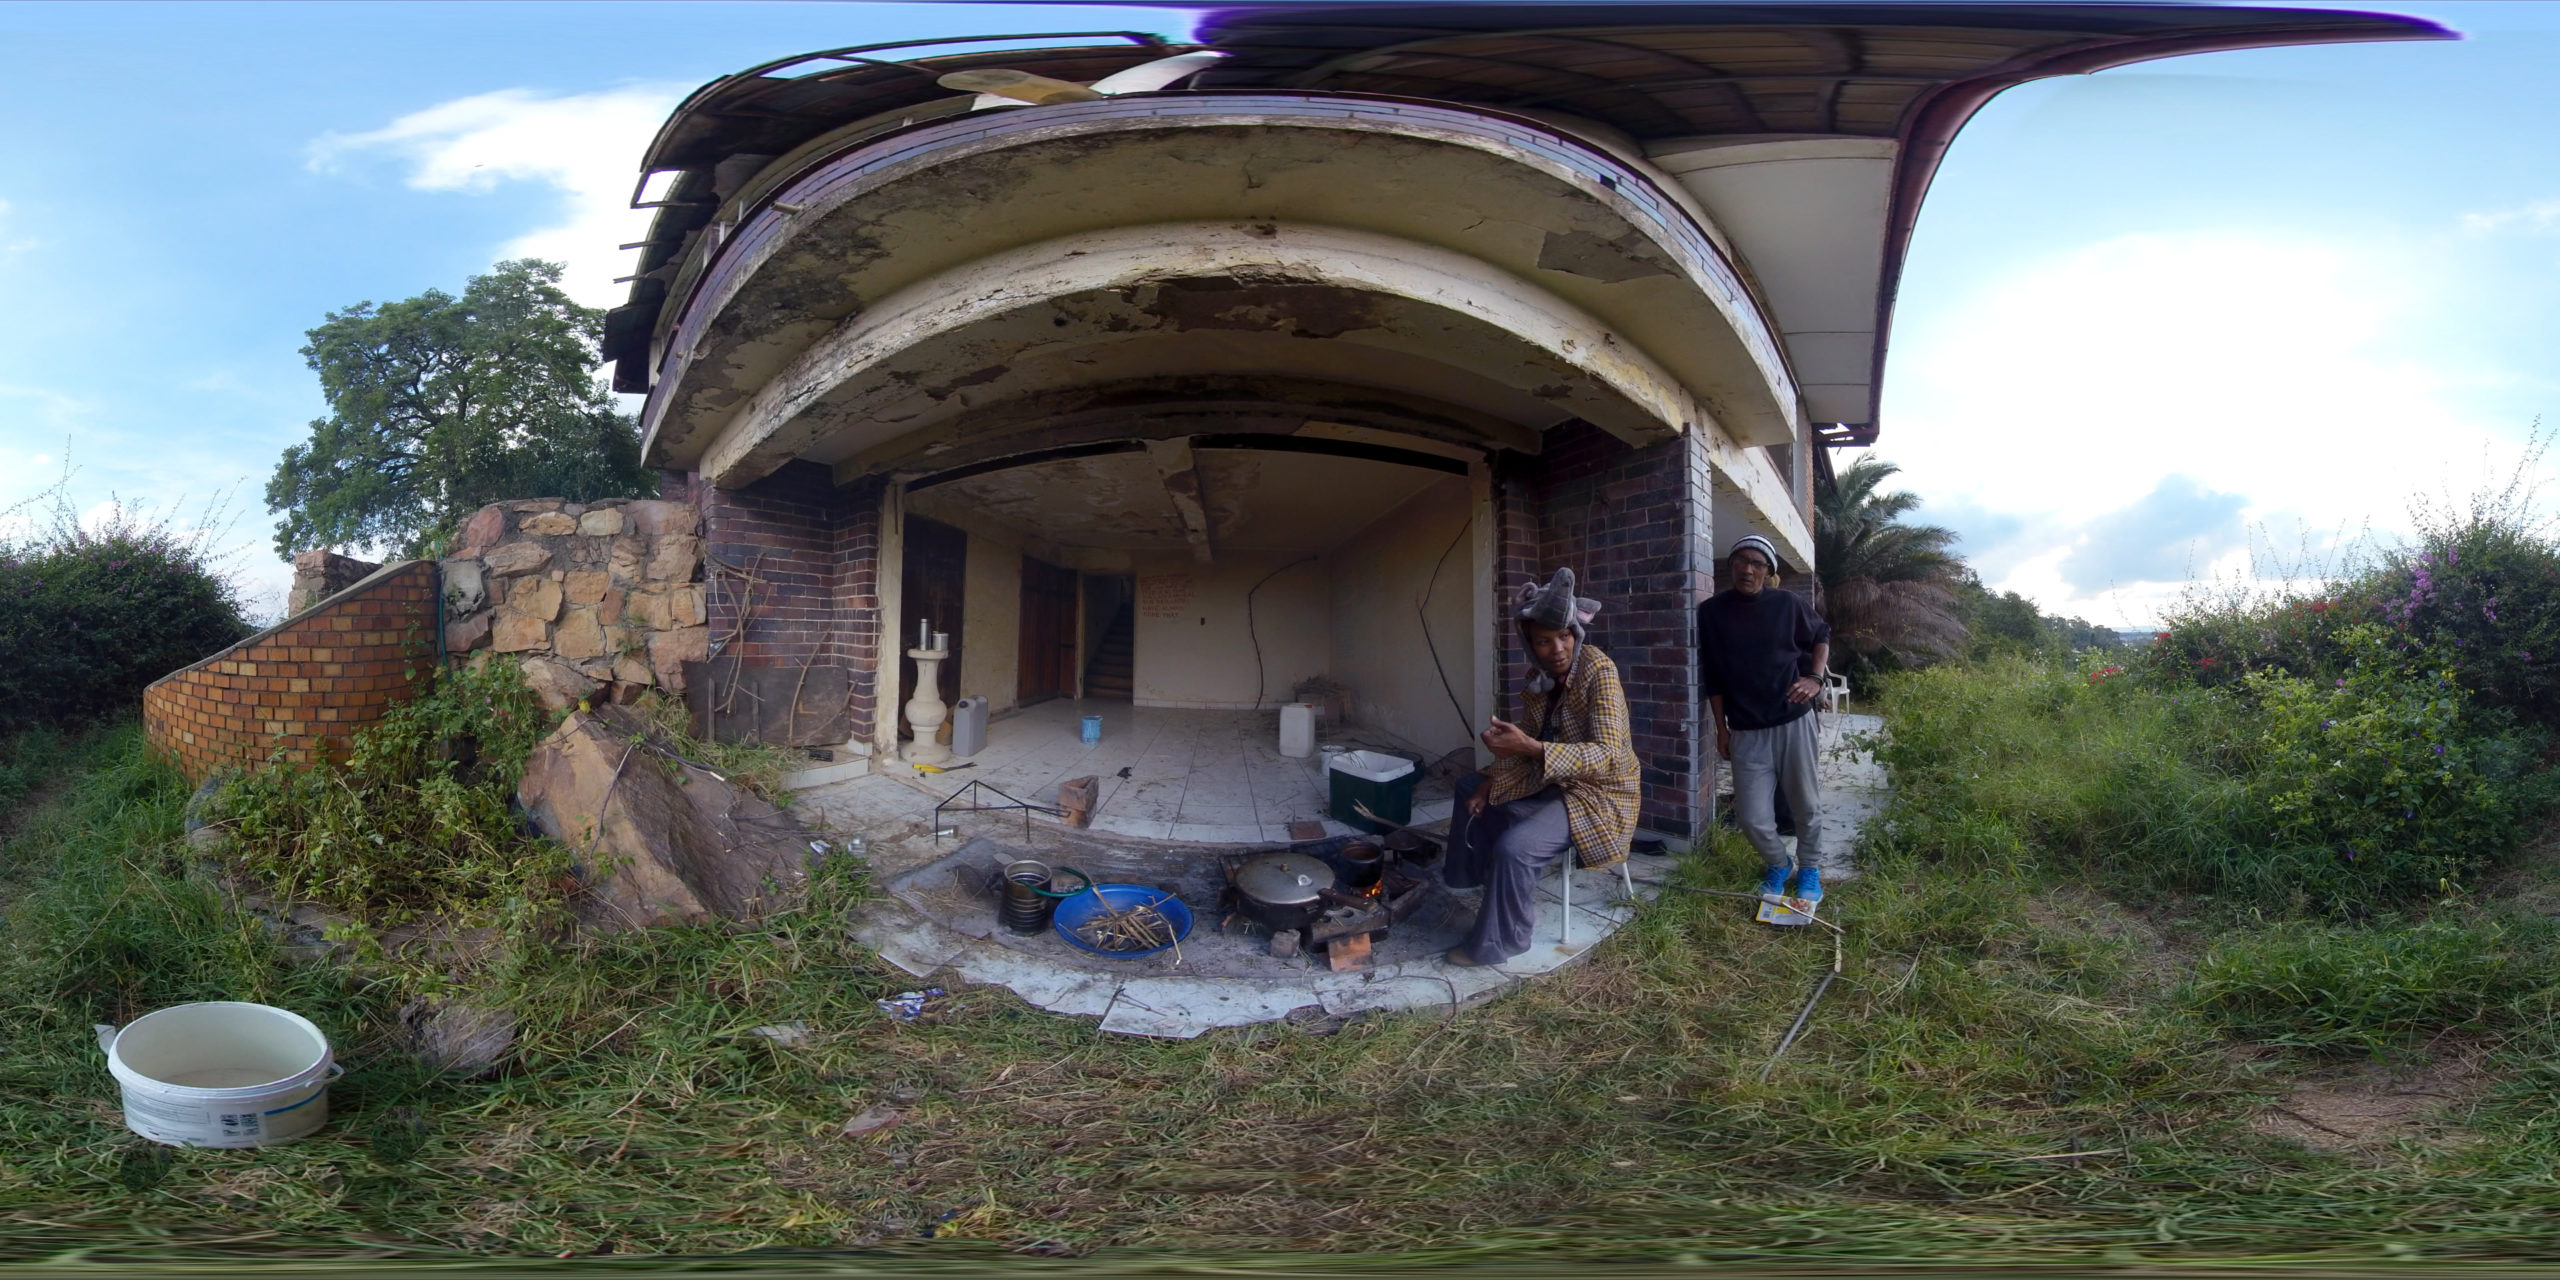 Inside the making of virtual reality film, <em>Azibuye – The Occupation</em>